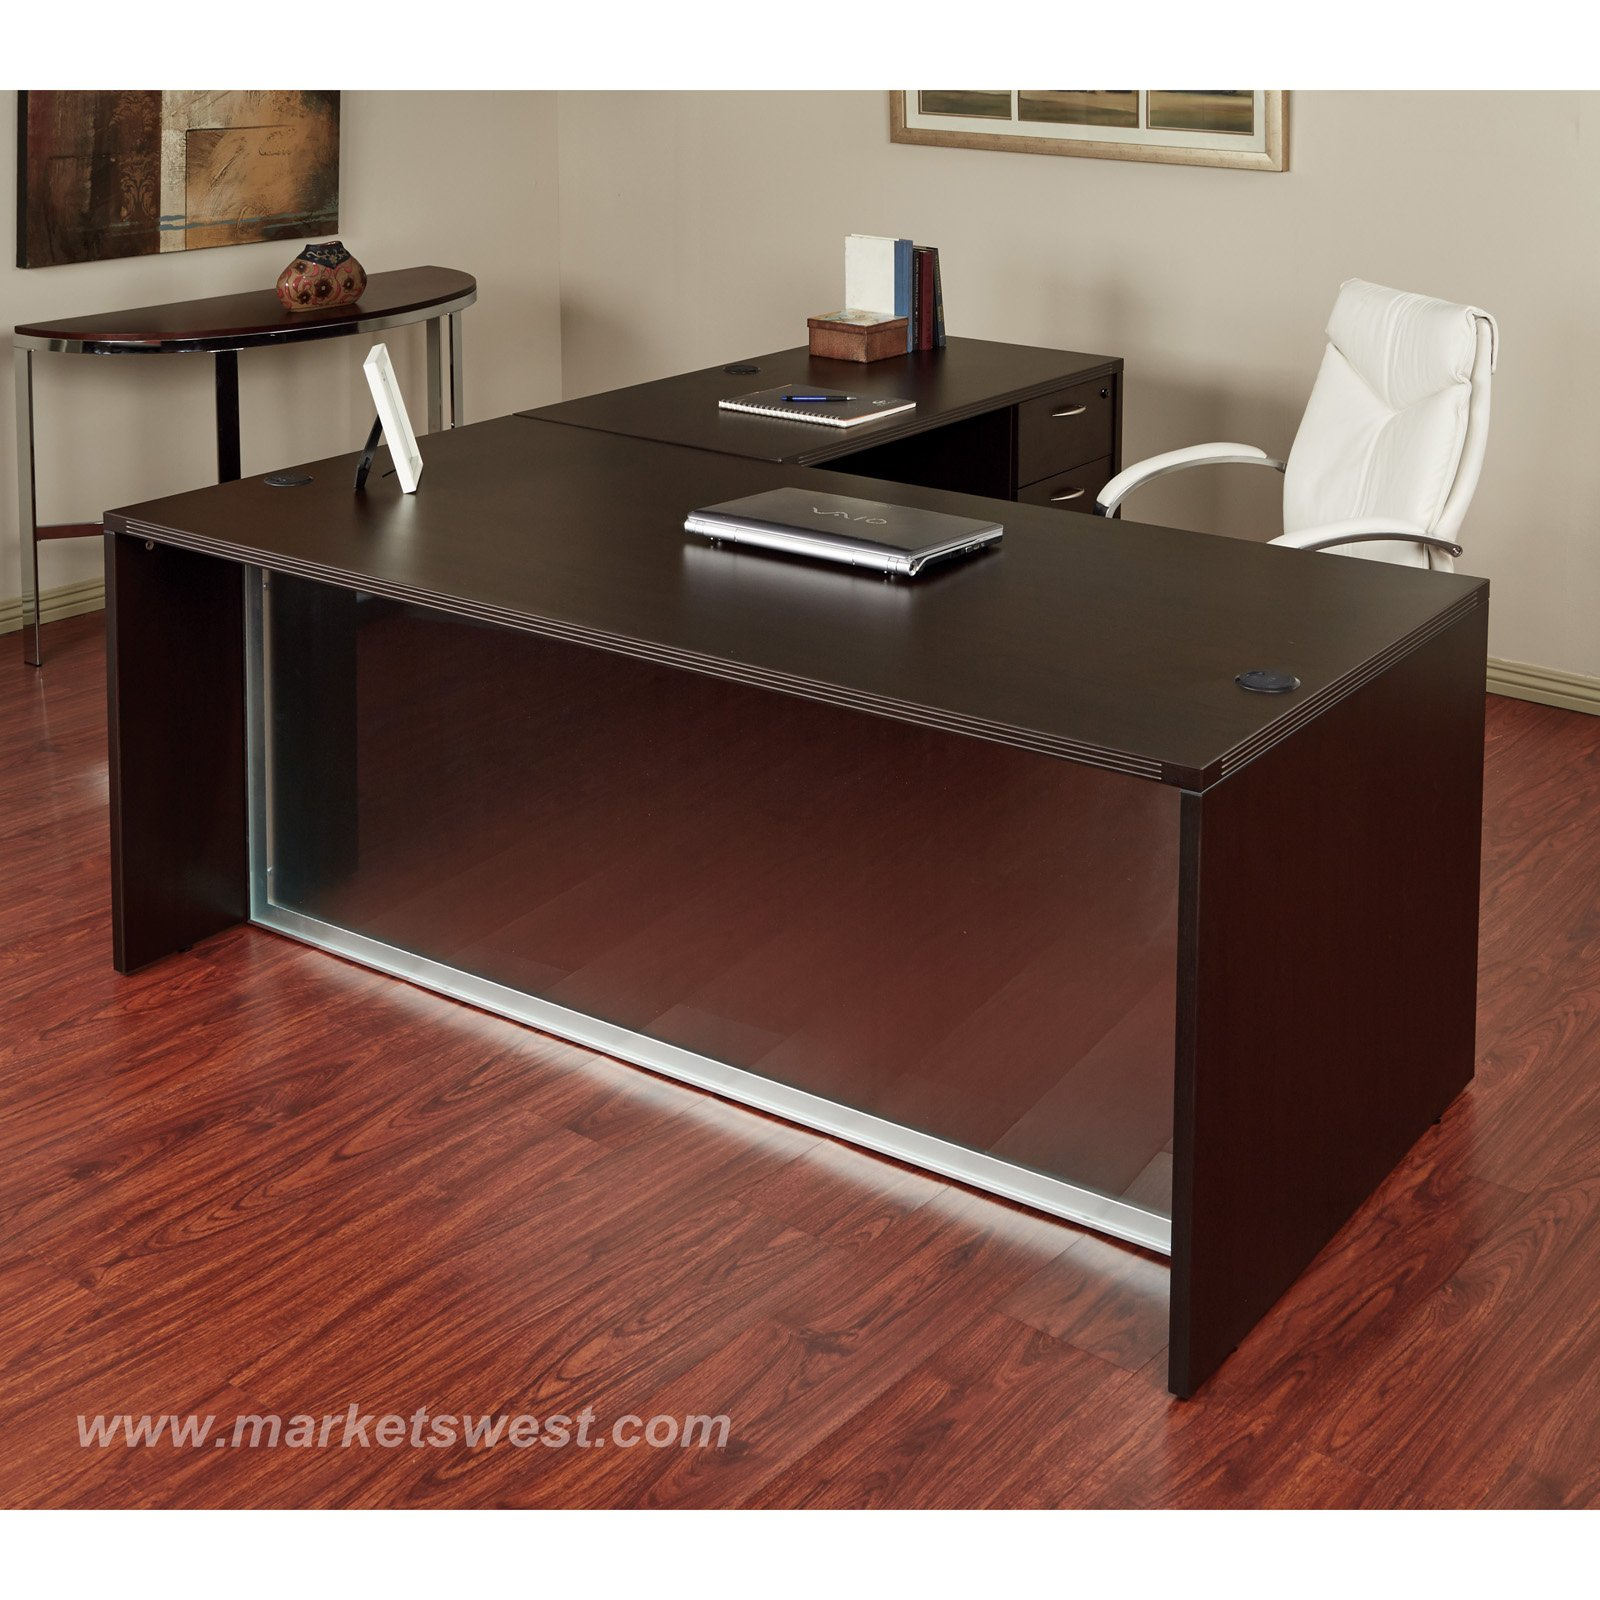 shipping inch garden product computer desk free overstock today tech urban blend home